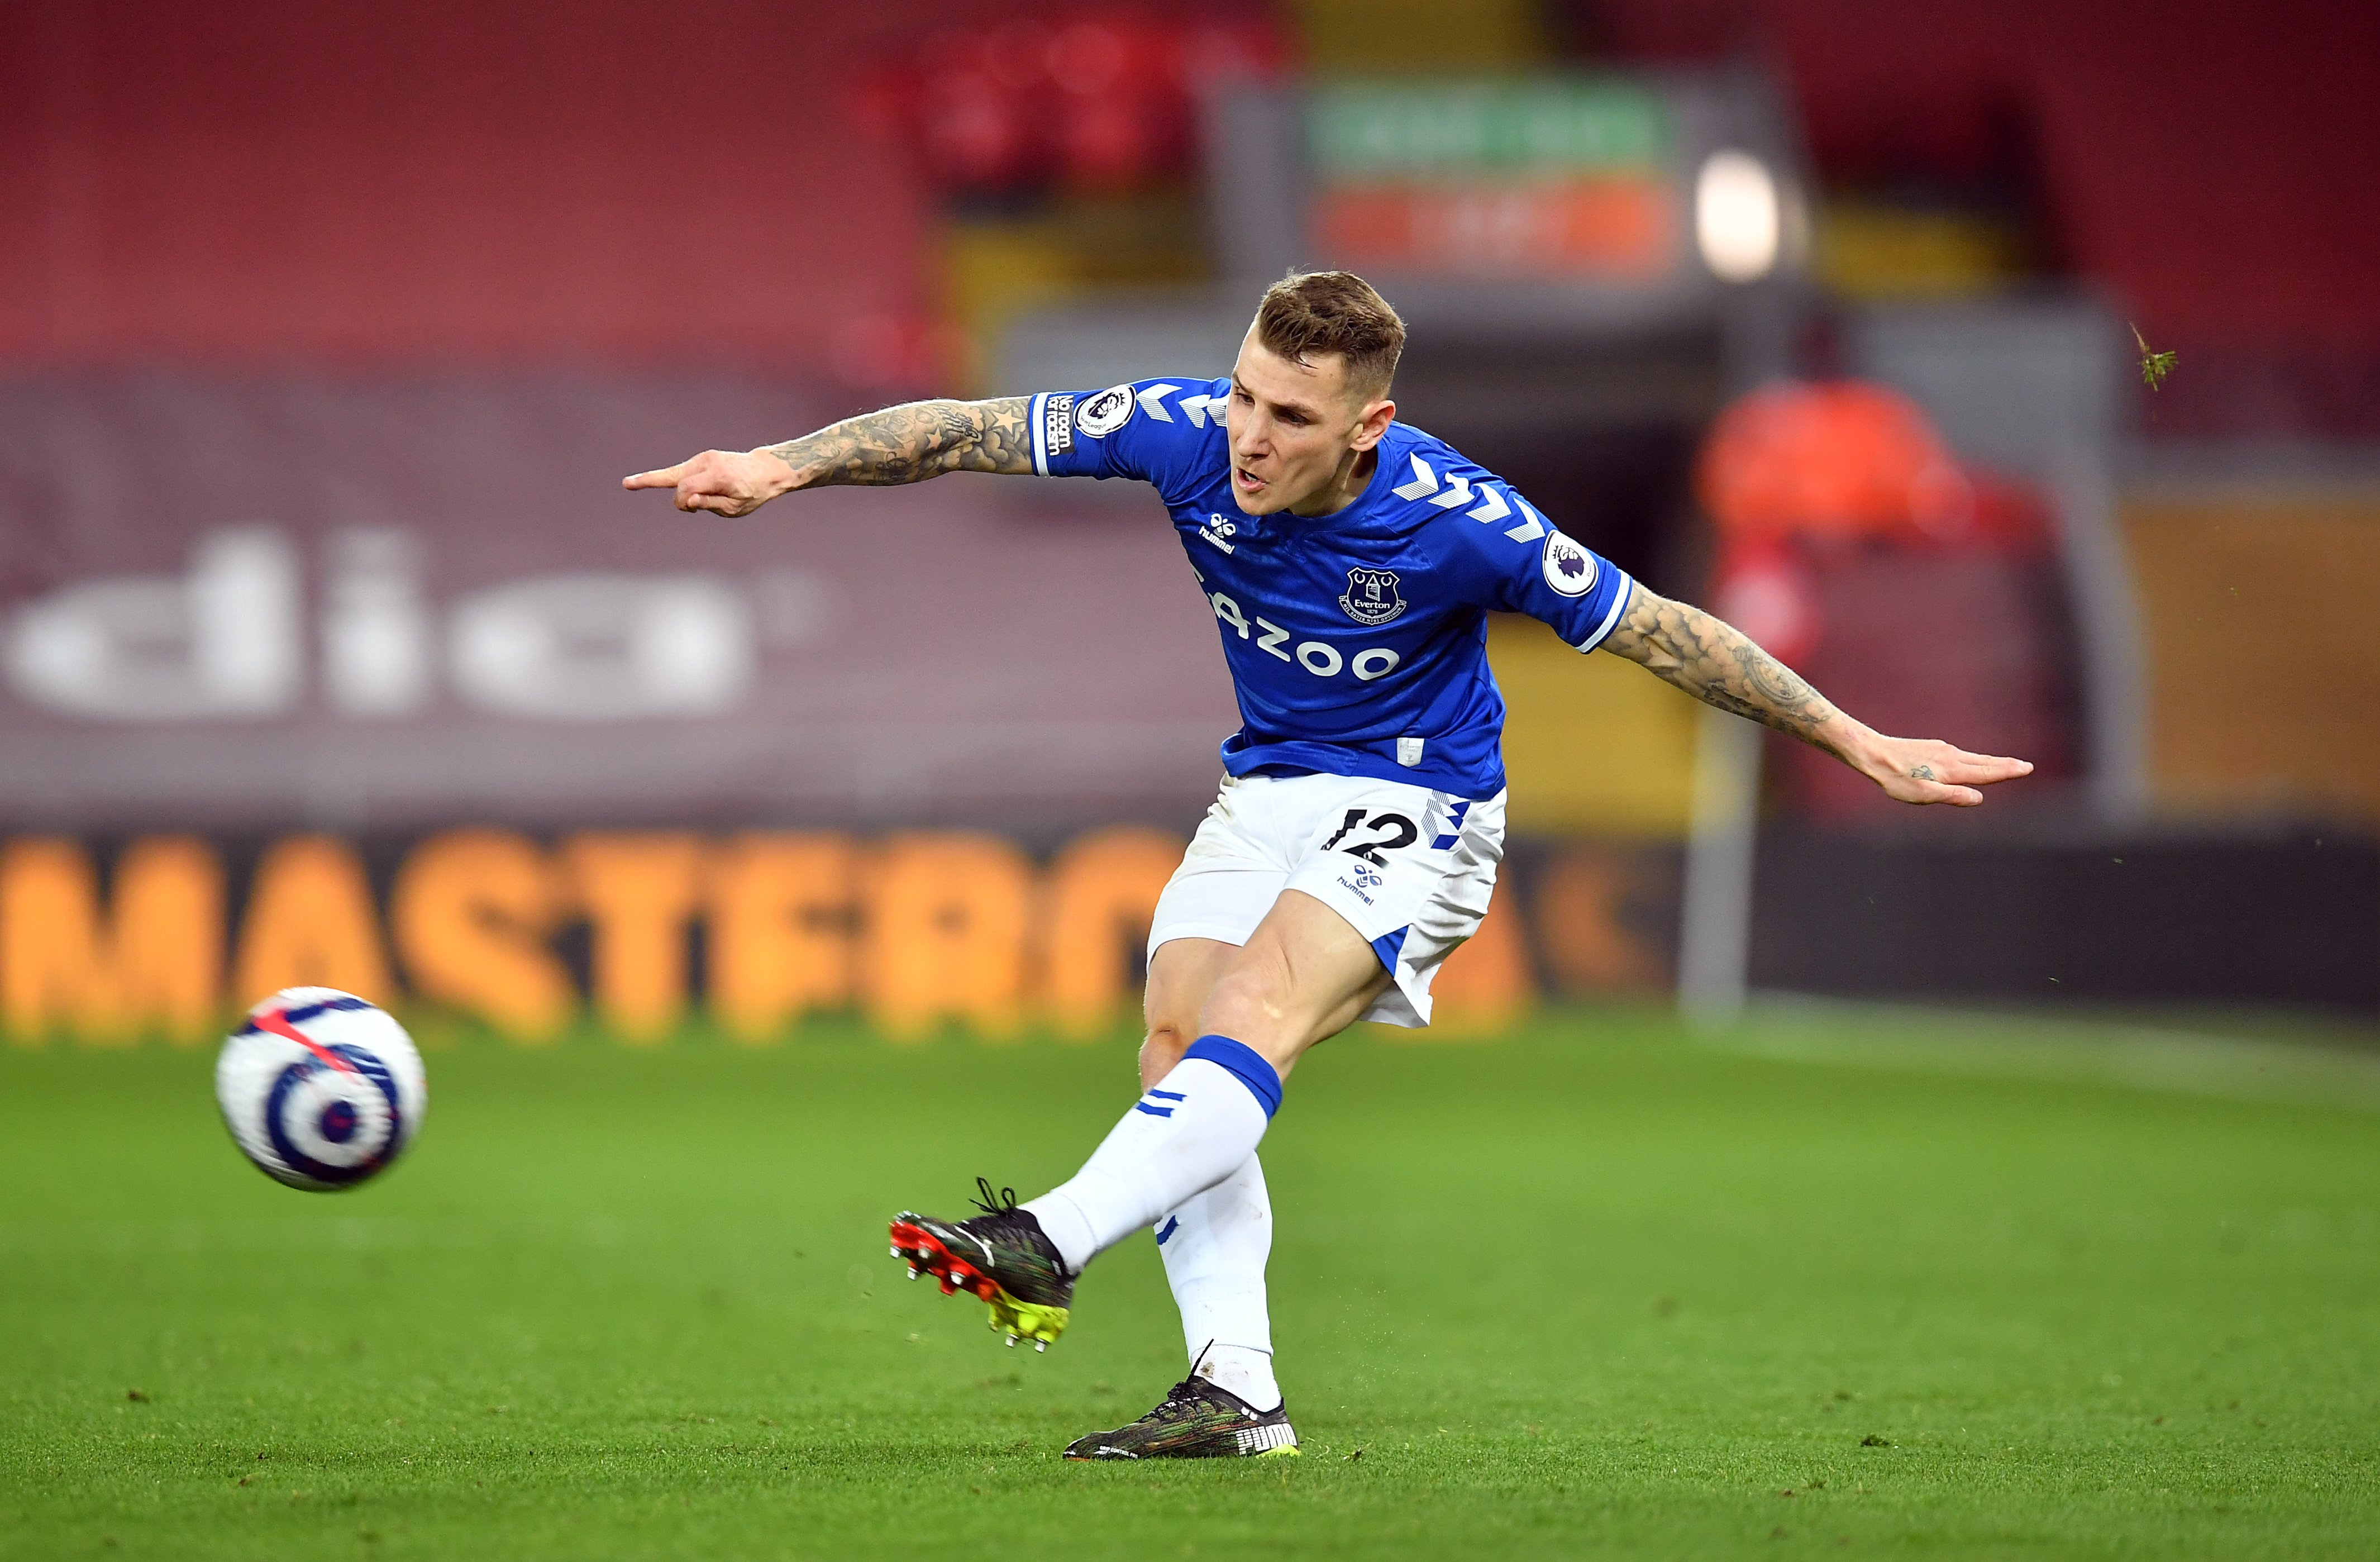 Lucas Digne aiming for Champions League after signing new deal at Everton